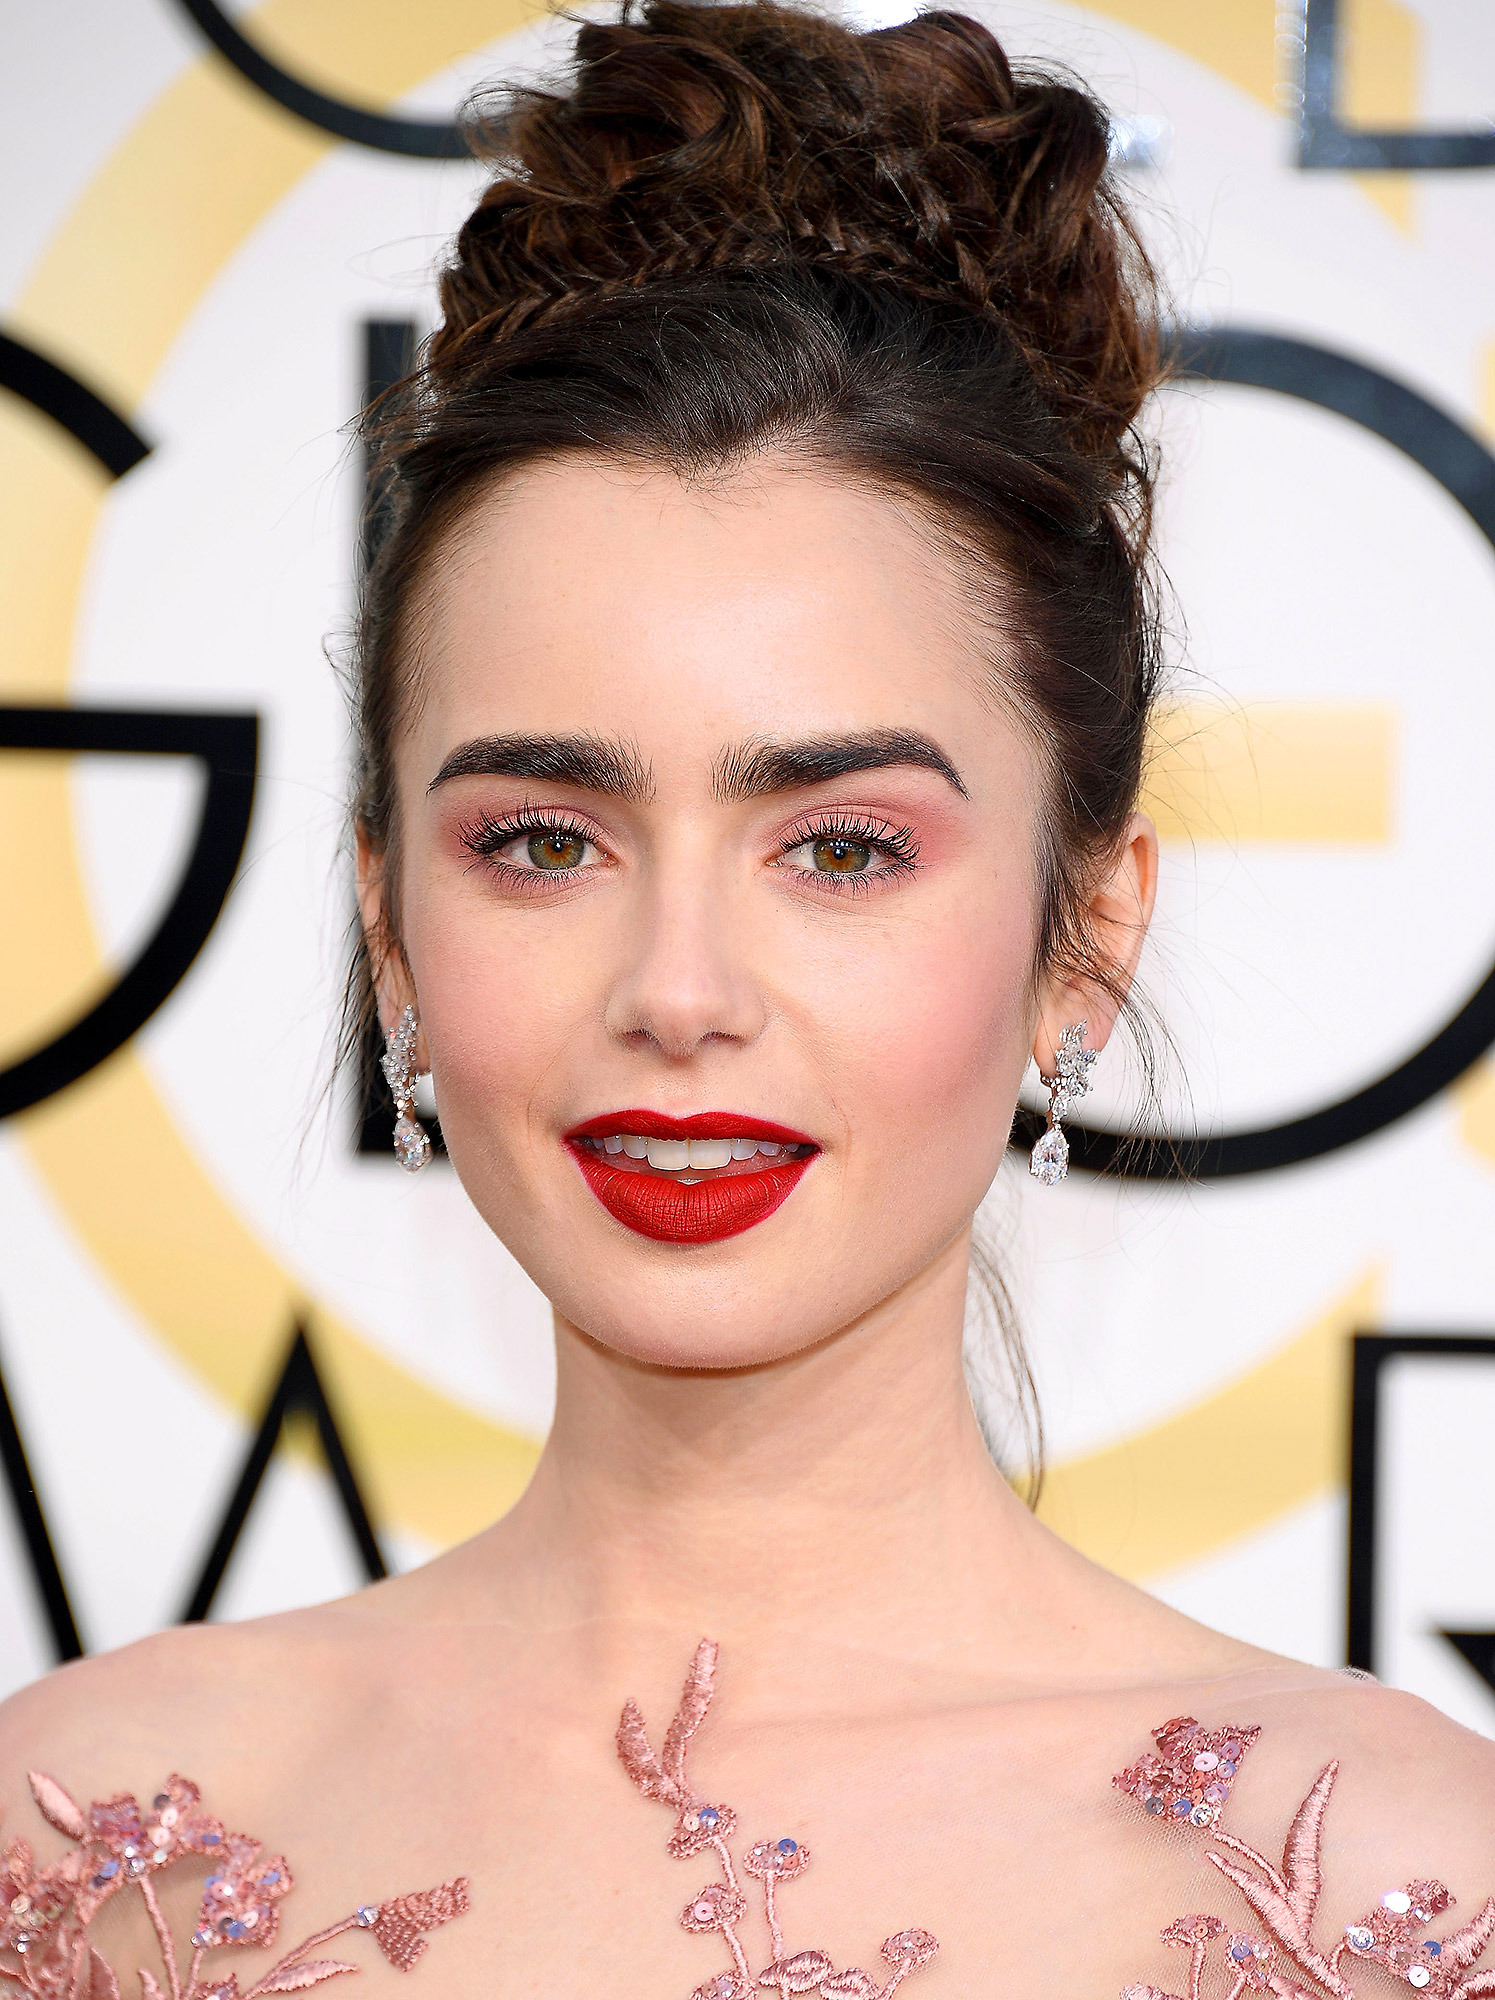 Lily Collins Golden Globes 2017 Makeup Tutorial ...